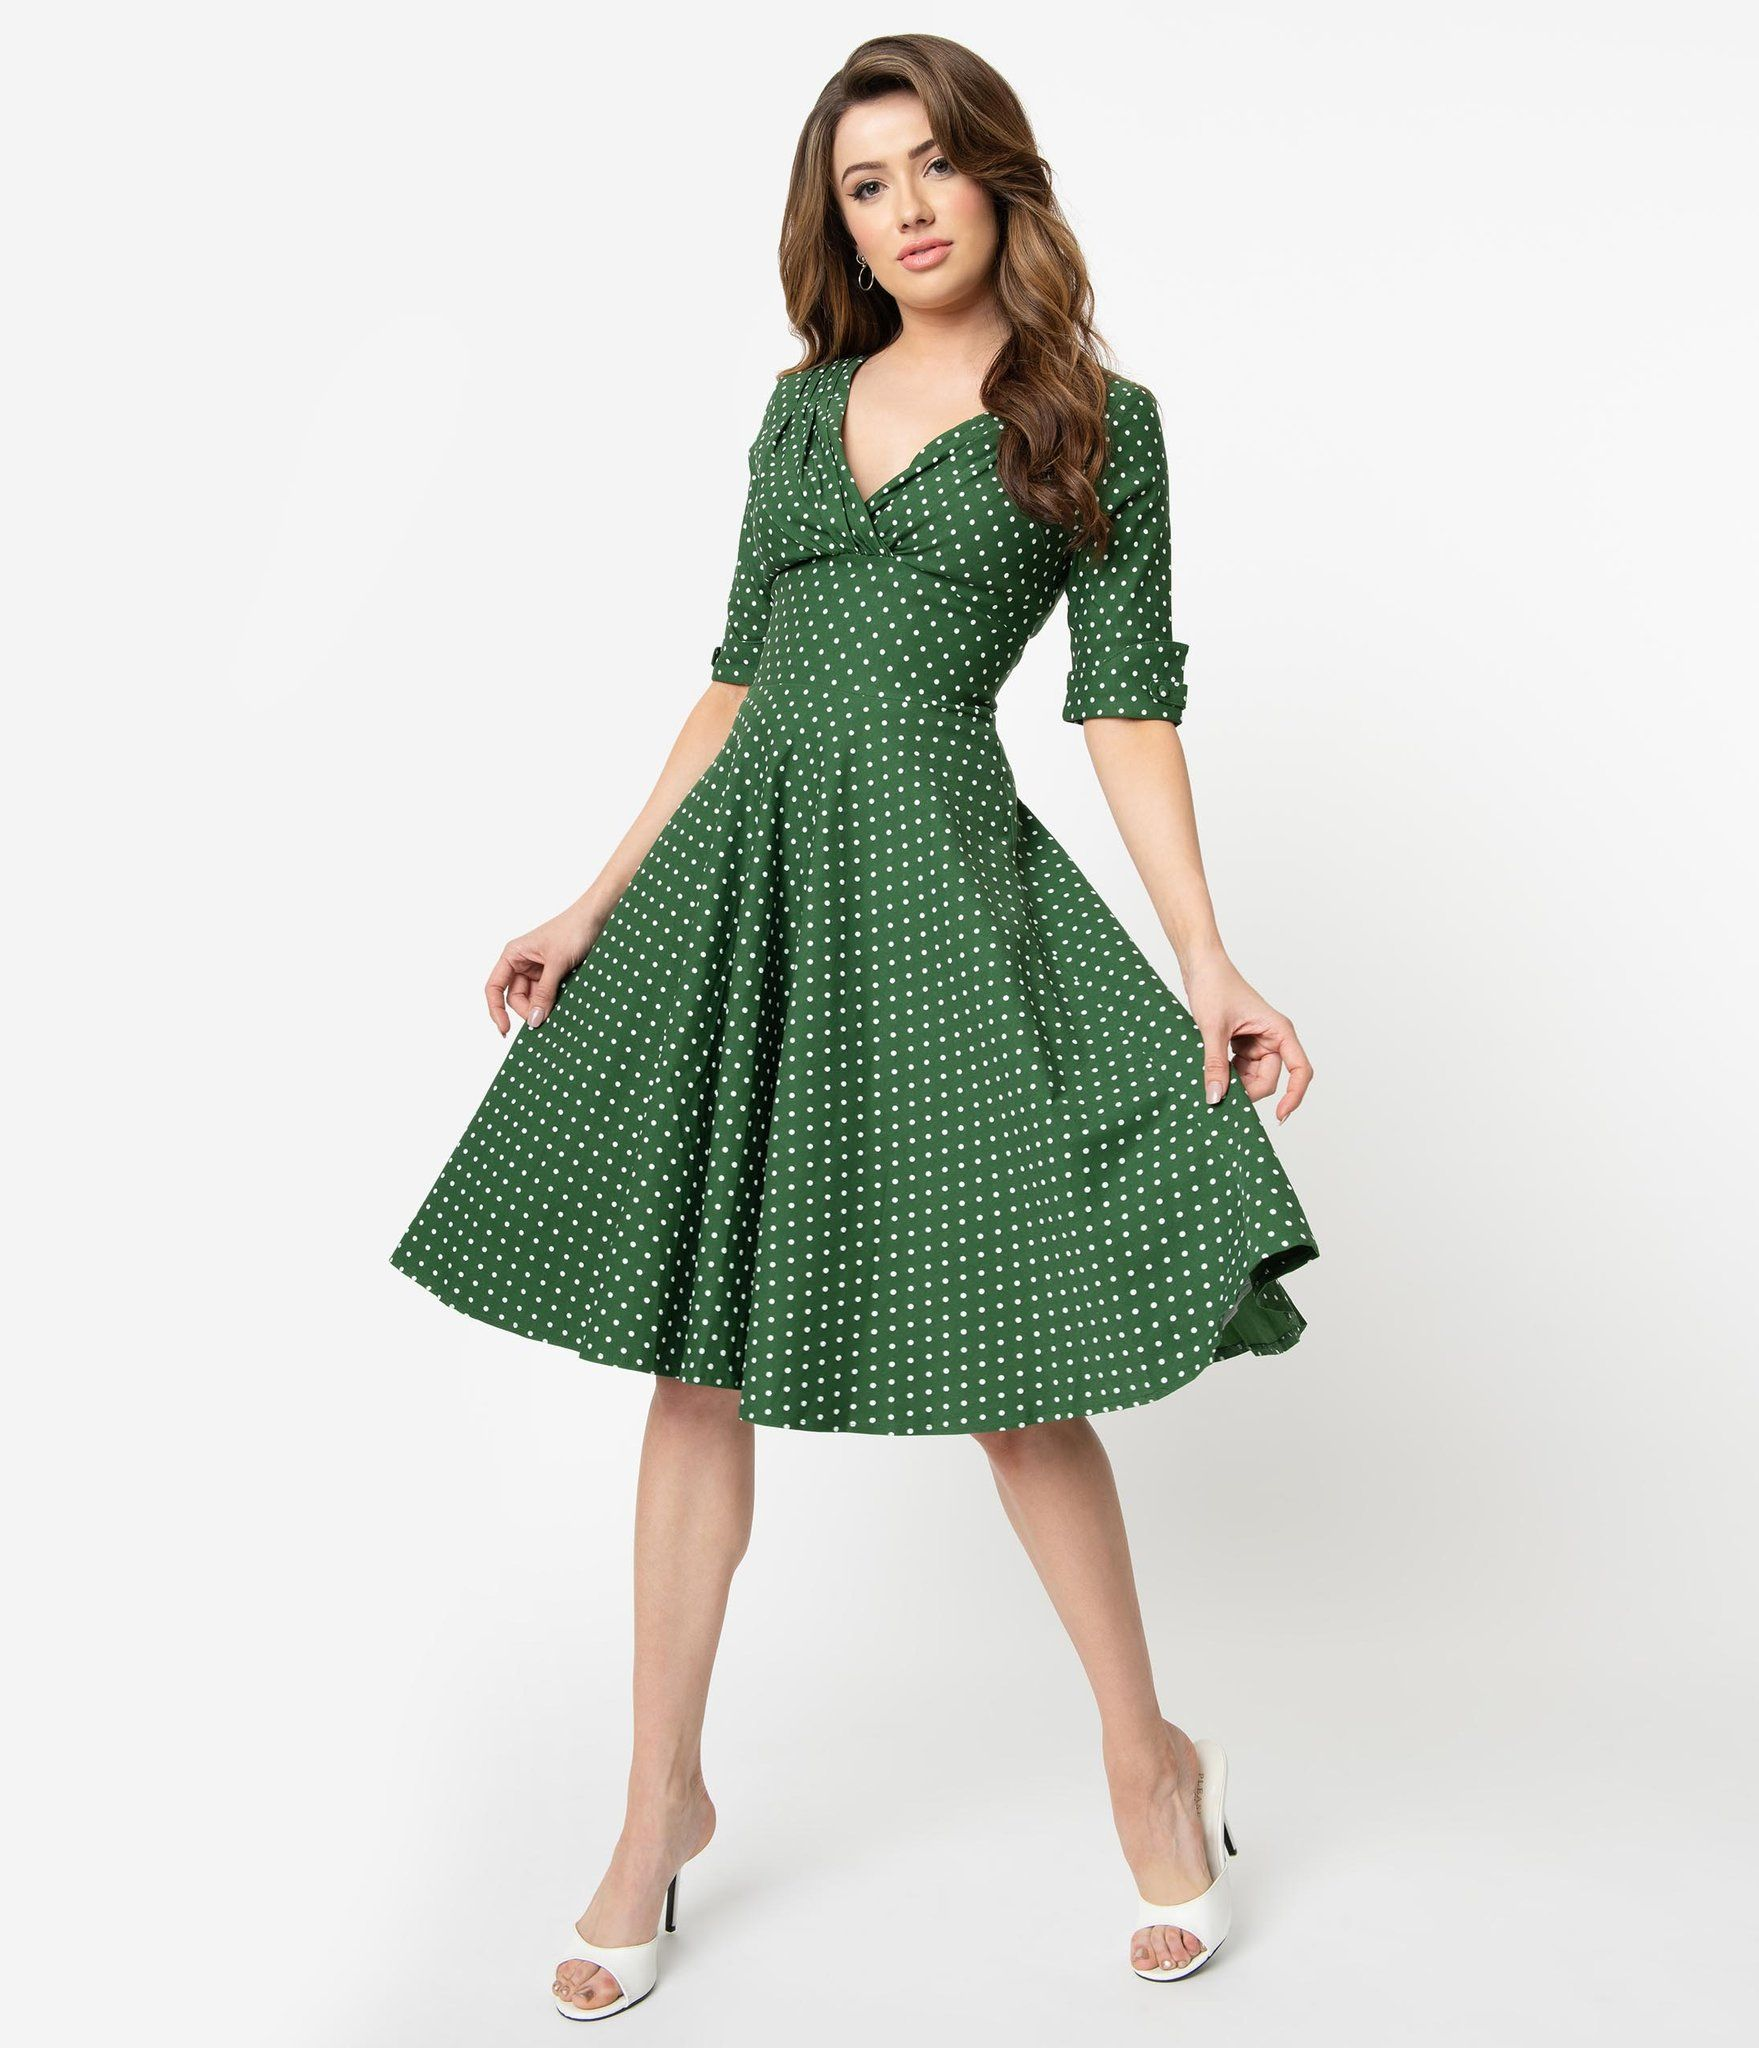 Unique Vintage 1950s Green White Pin Dot Delores Swing Dress With Sleeves Vintage Dresses 50s Swing Dress With Sleeves Swing Dress [ 2048 x 1759 Pixel ]